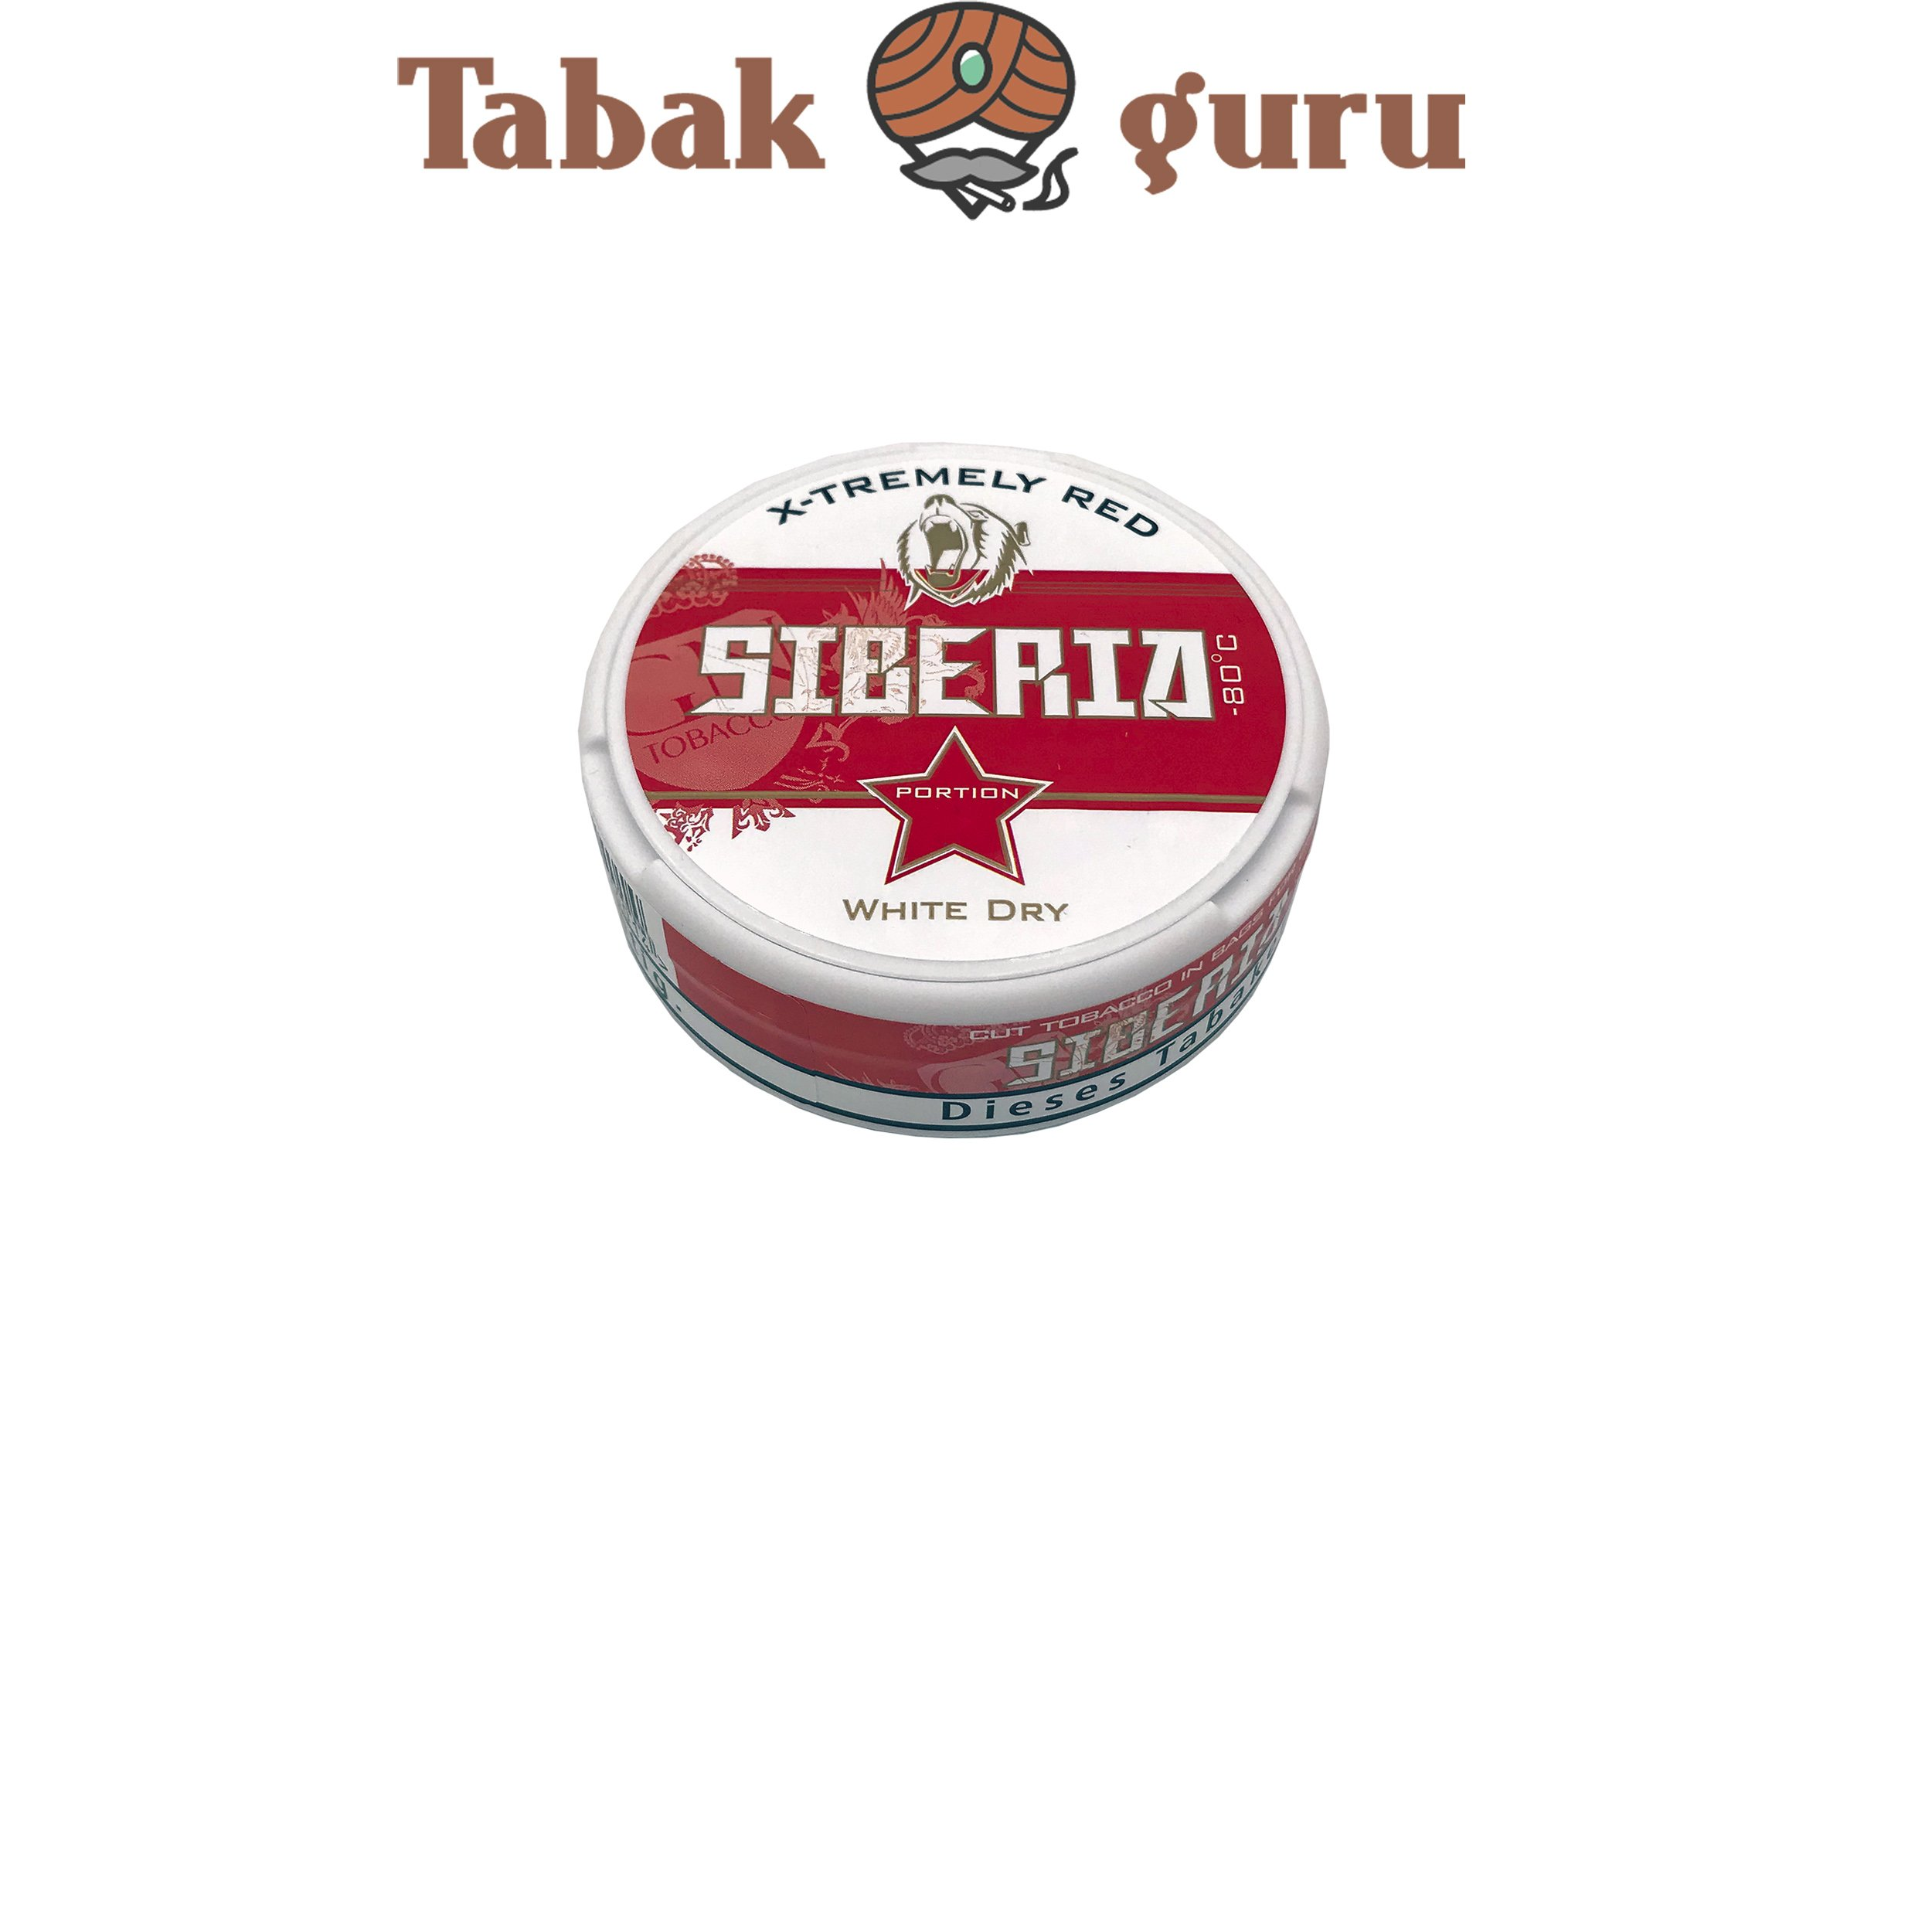 Siberia Extremely Stong White Dry Kautabak, Chewing Bags